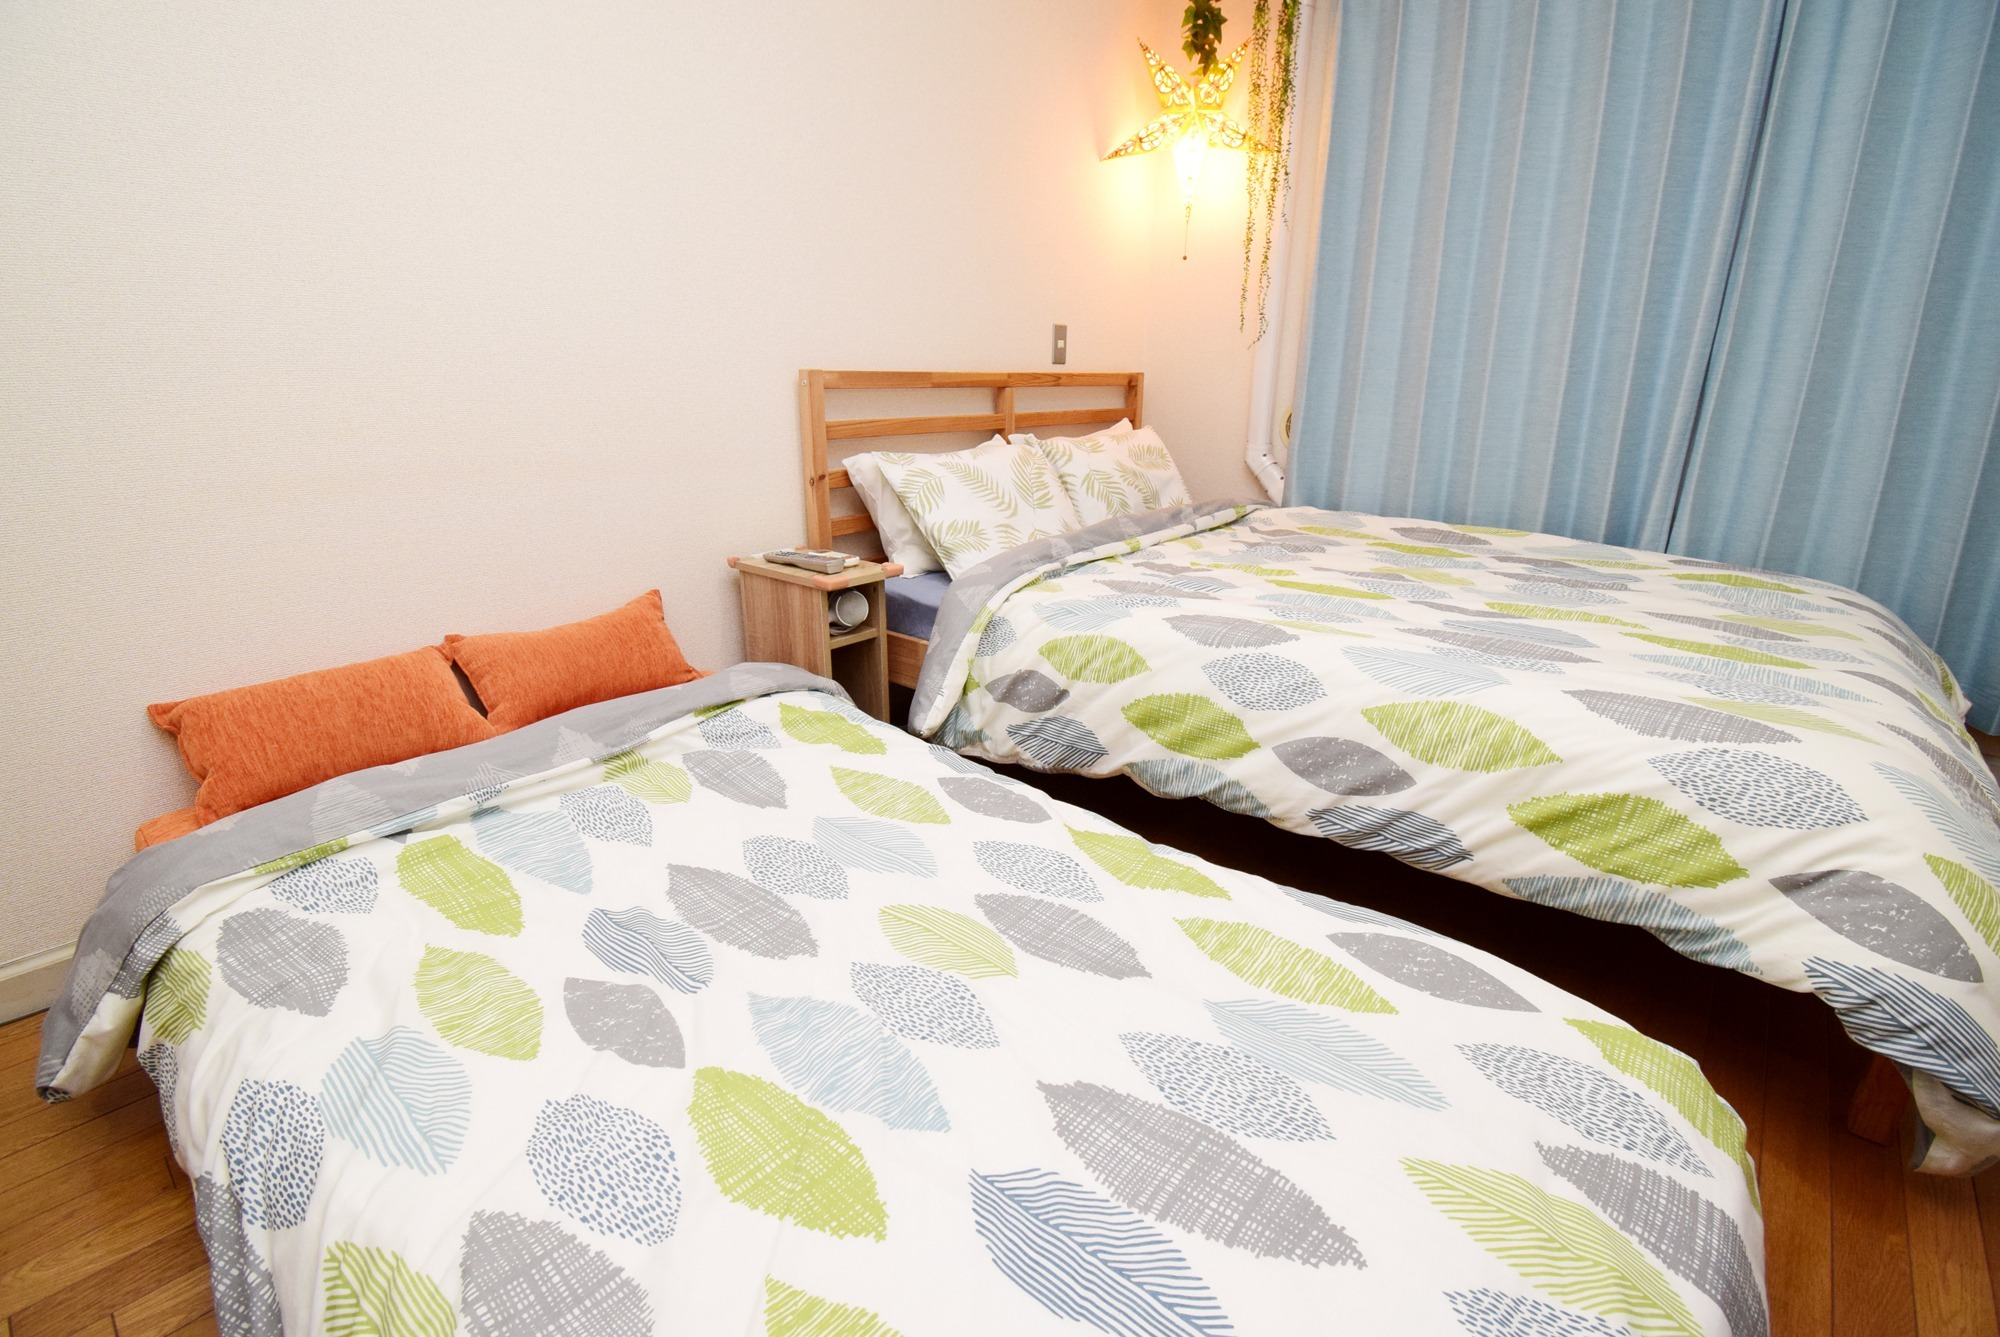 The main bed is a double size. The sofa bed is a large single size.